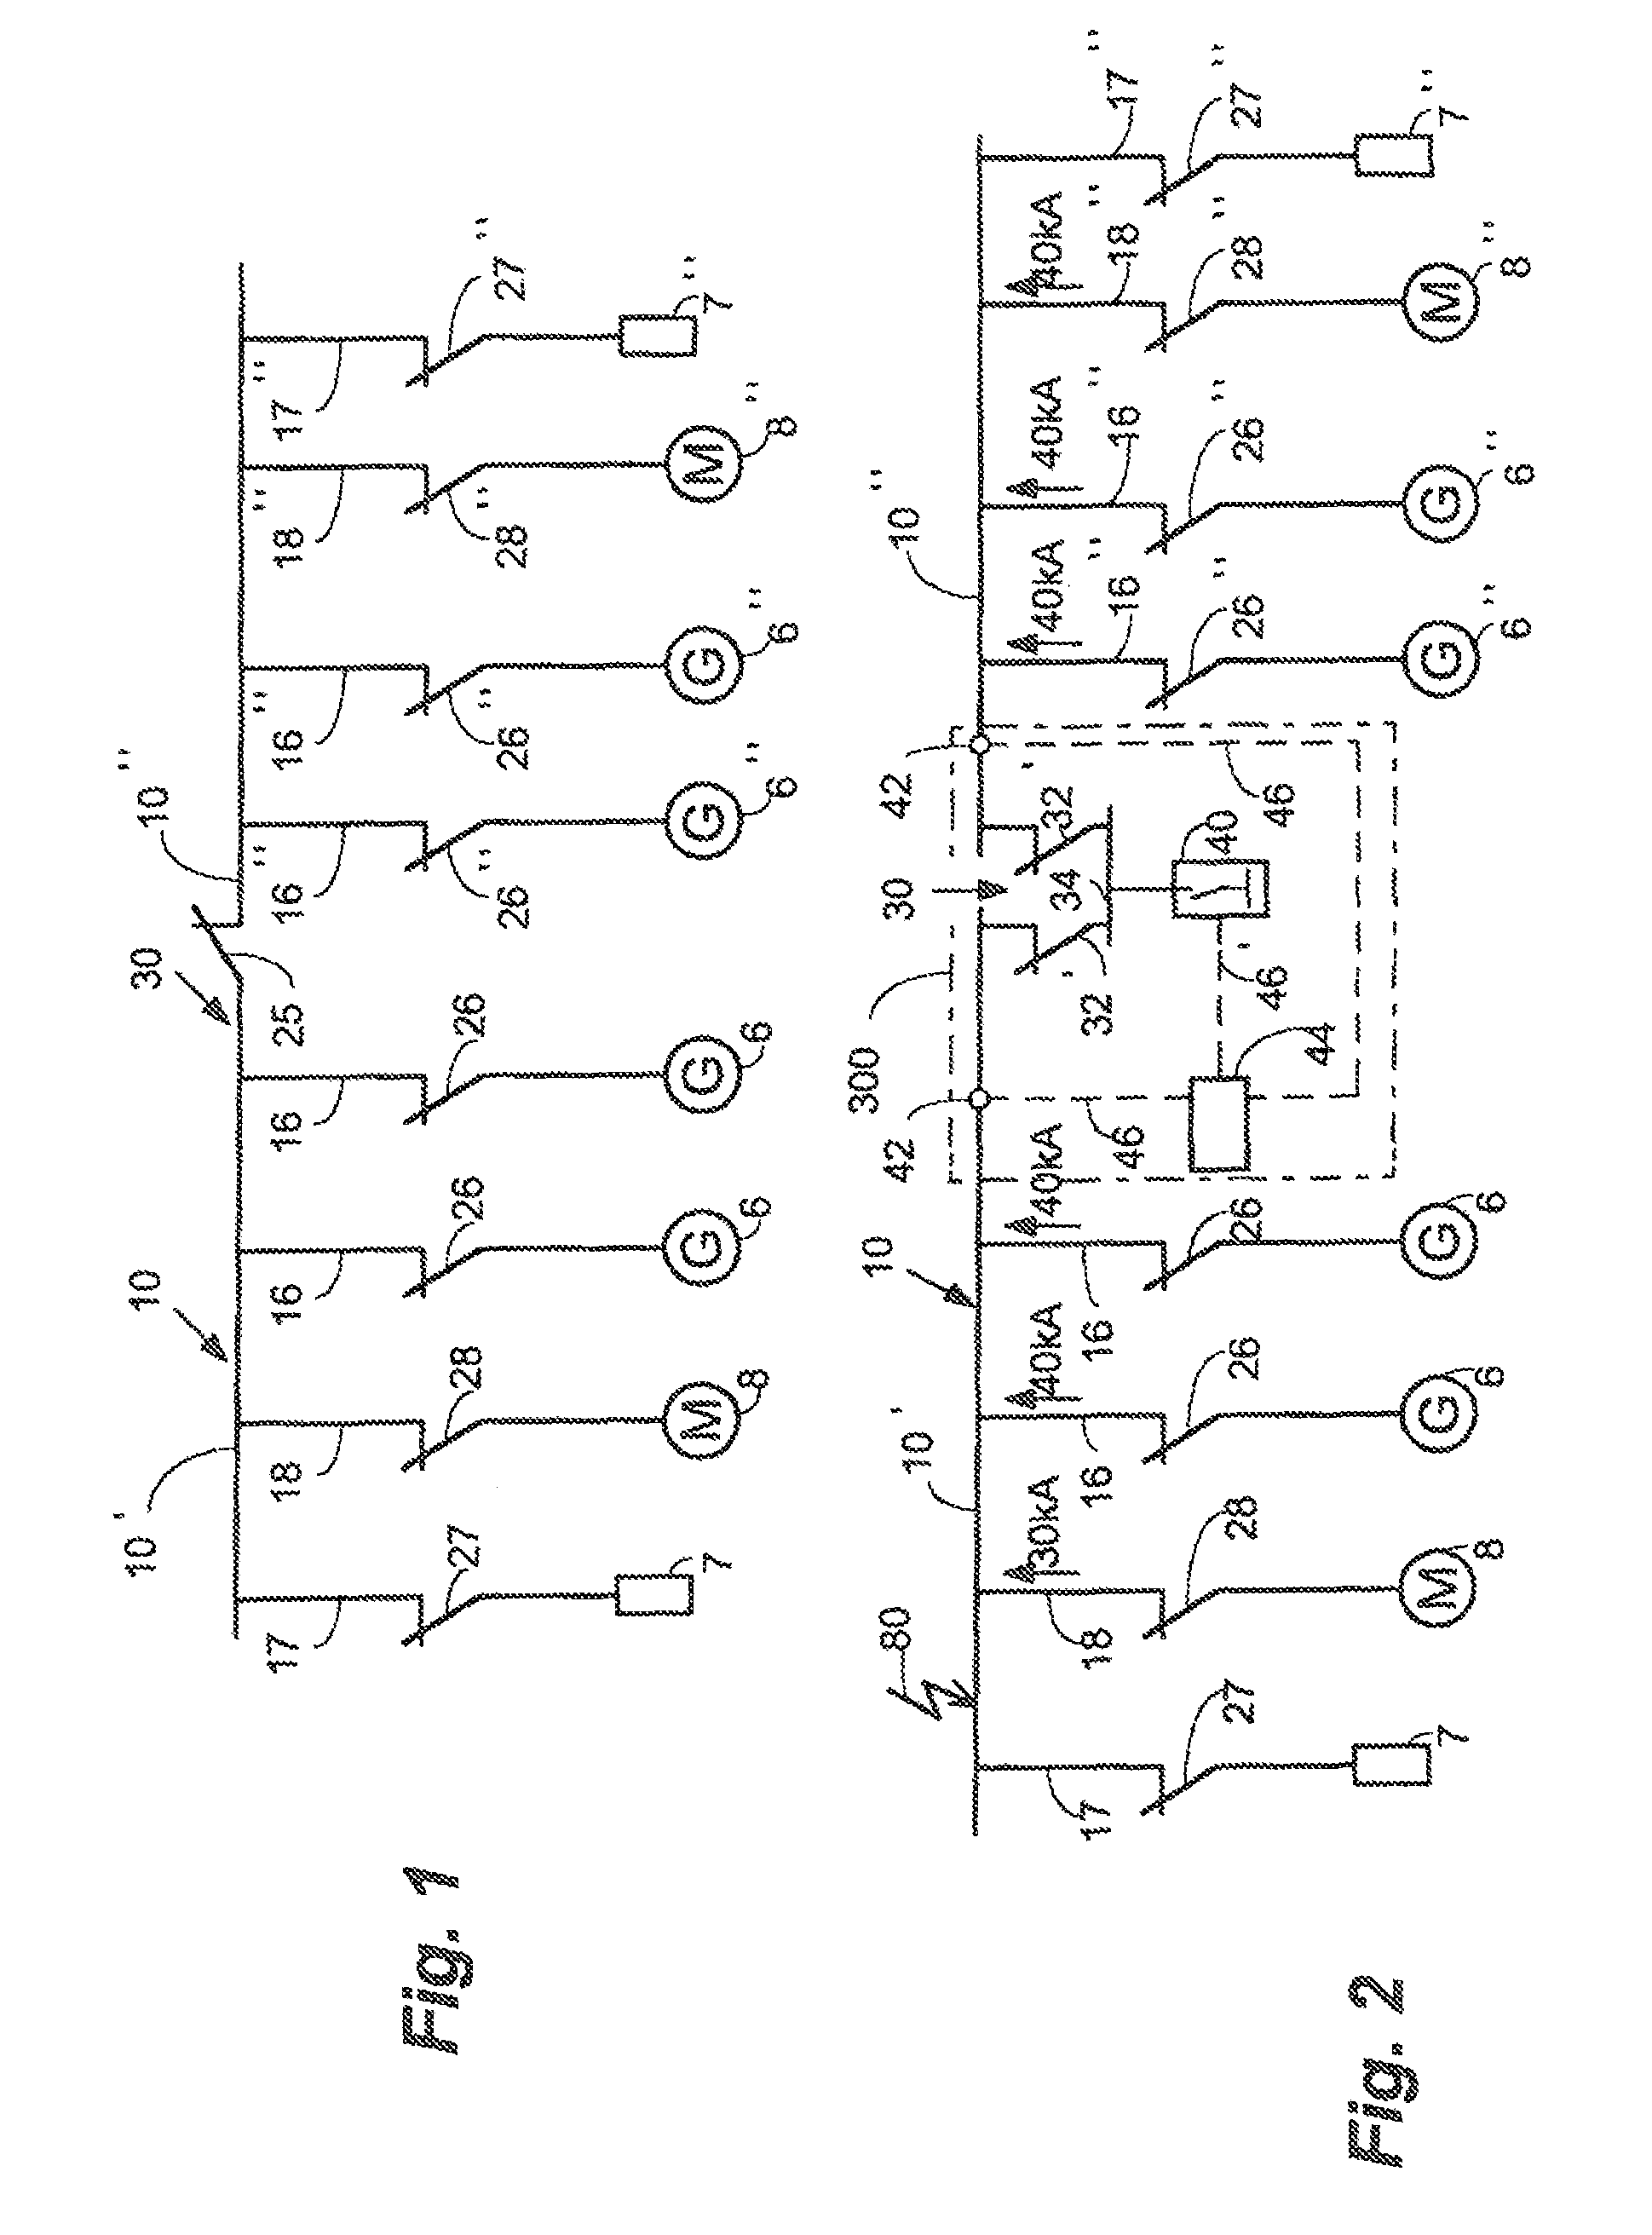 Patent Us8400740 Short Circuit Limiting Device In A Low Voltage Electronic Crowbar For Ac And Dc Lines Drawing